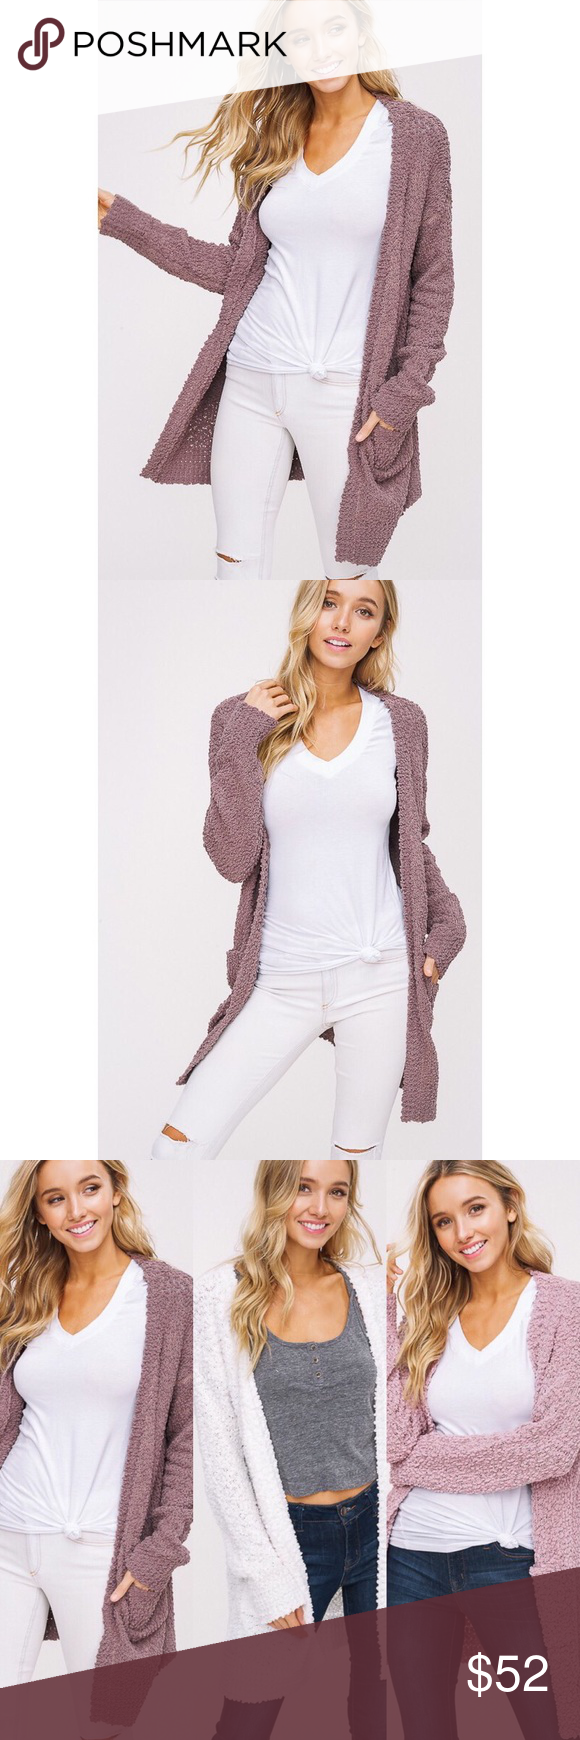 � Polly Popcorn Chunky Cardigan - Mauve You'll never want to take off this dream of a cardigan! Features a soft popcorn texture, drop shoulder with long sleeves, 2 front pockets. 100% Acrylic. �ALSO AVAILABLE IN IVORY AND MAUVE� likeNarly Sweaters Cardigans